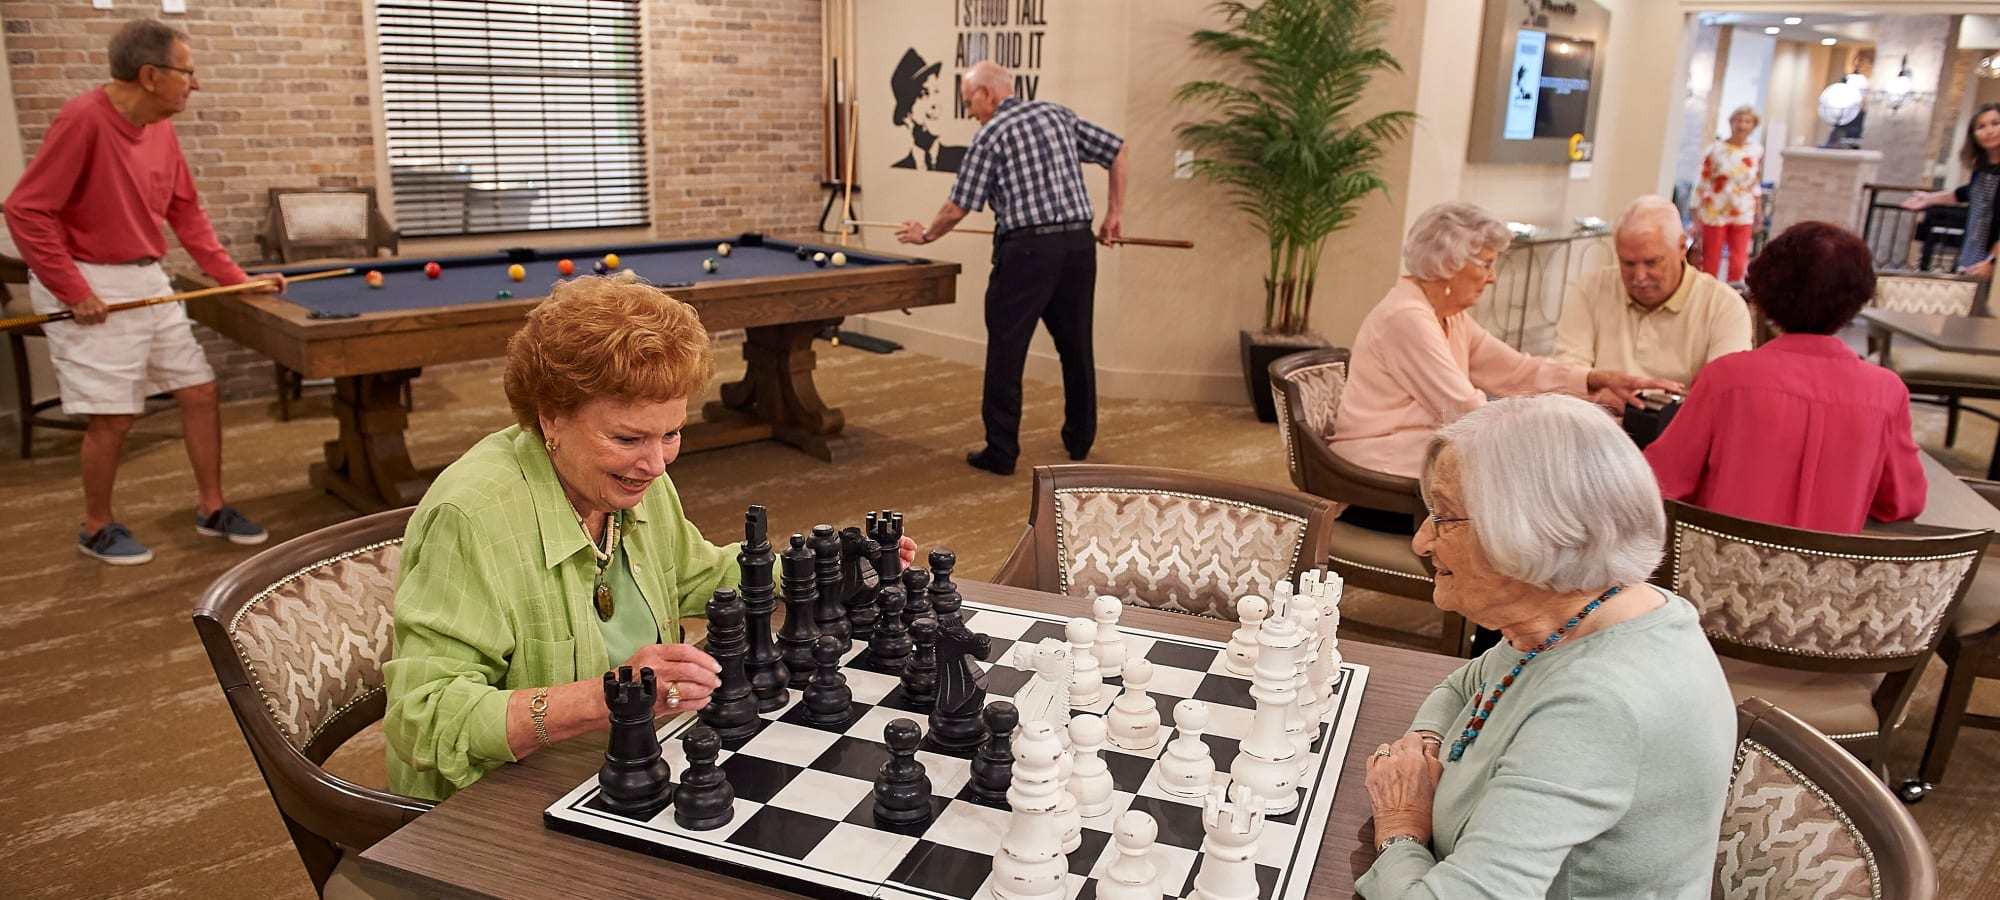 Residents playing chess in a game room at AgeWell Living